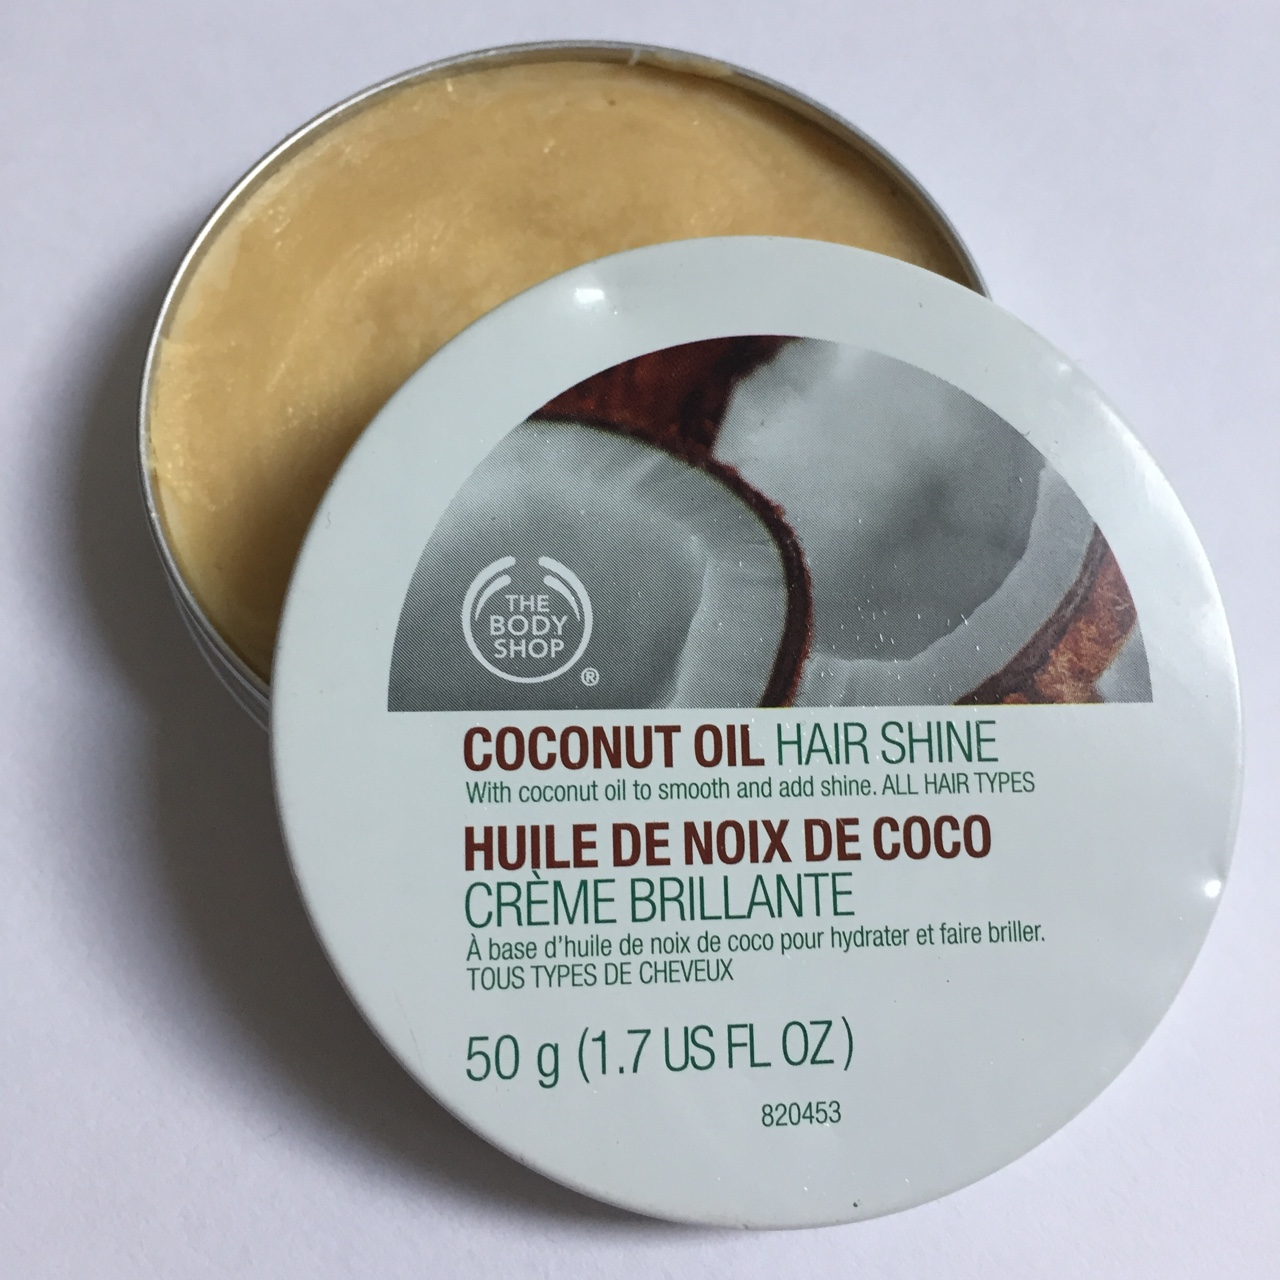 Body shop coconut oil hair shine for all hair types    - Depop